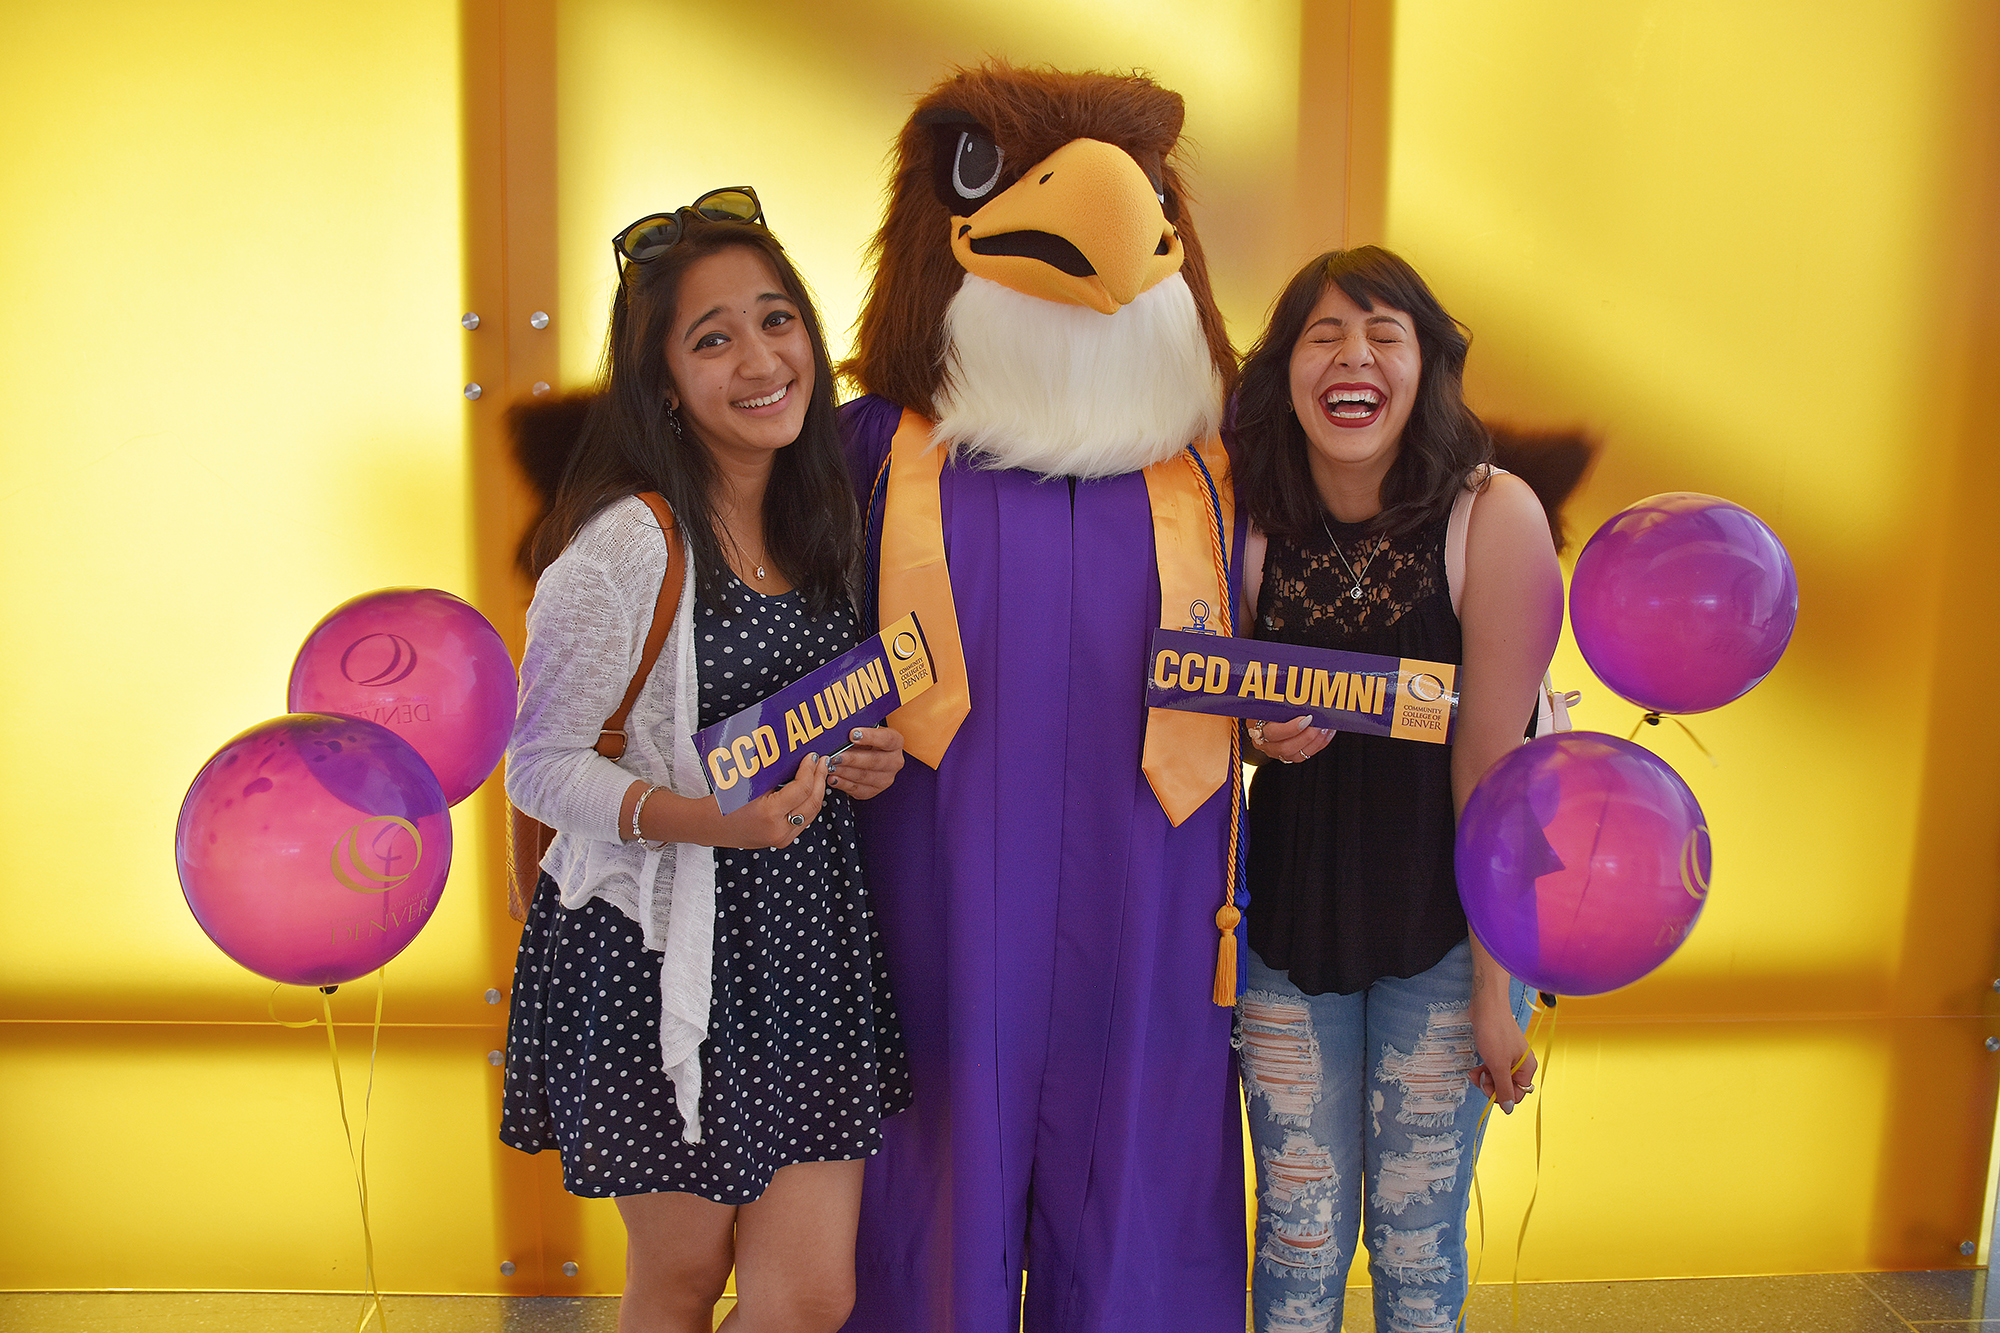 two women holding CCD Alumni bumperstickers with Mascot